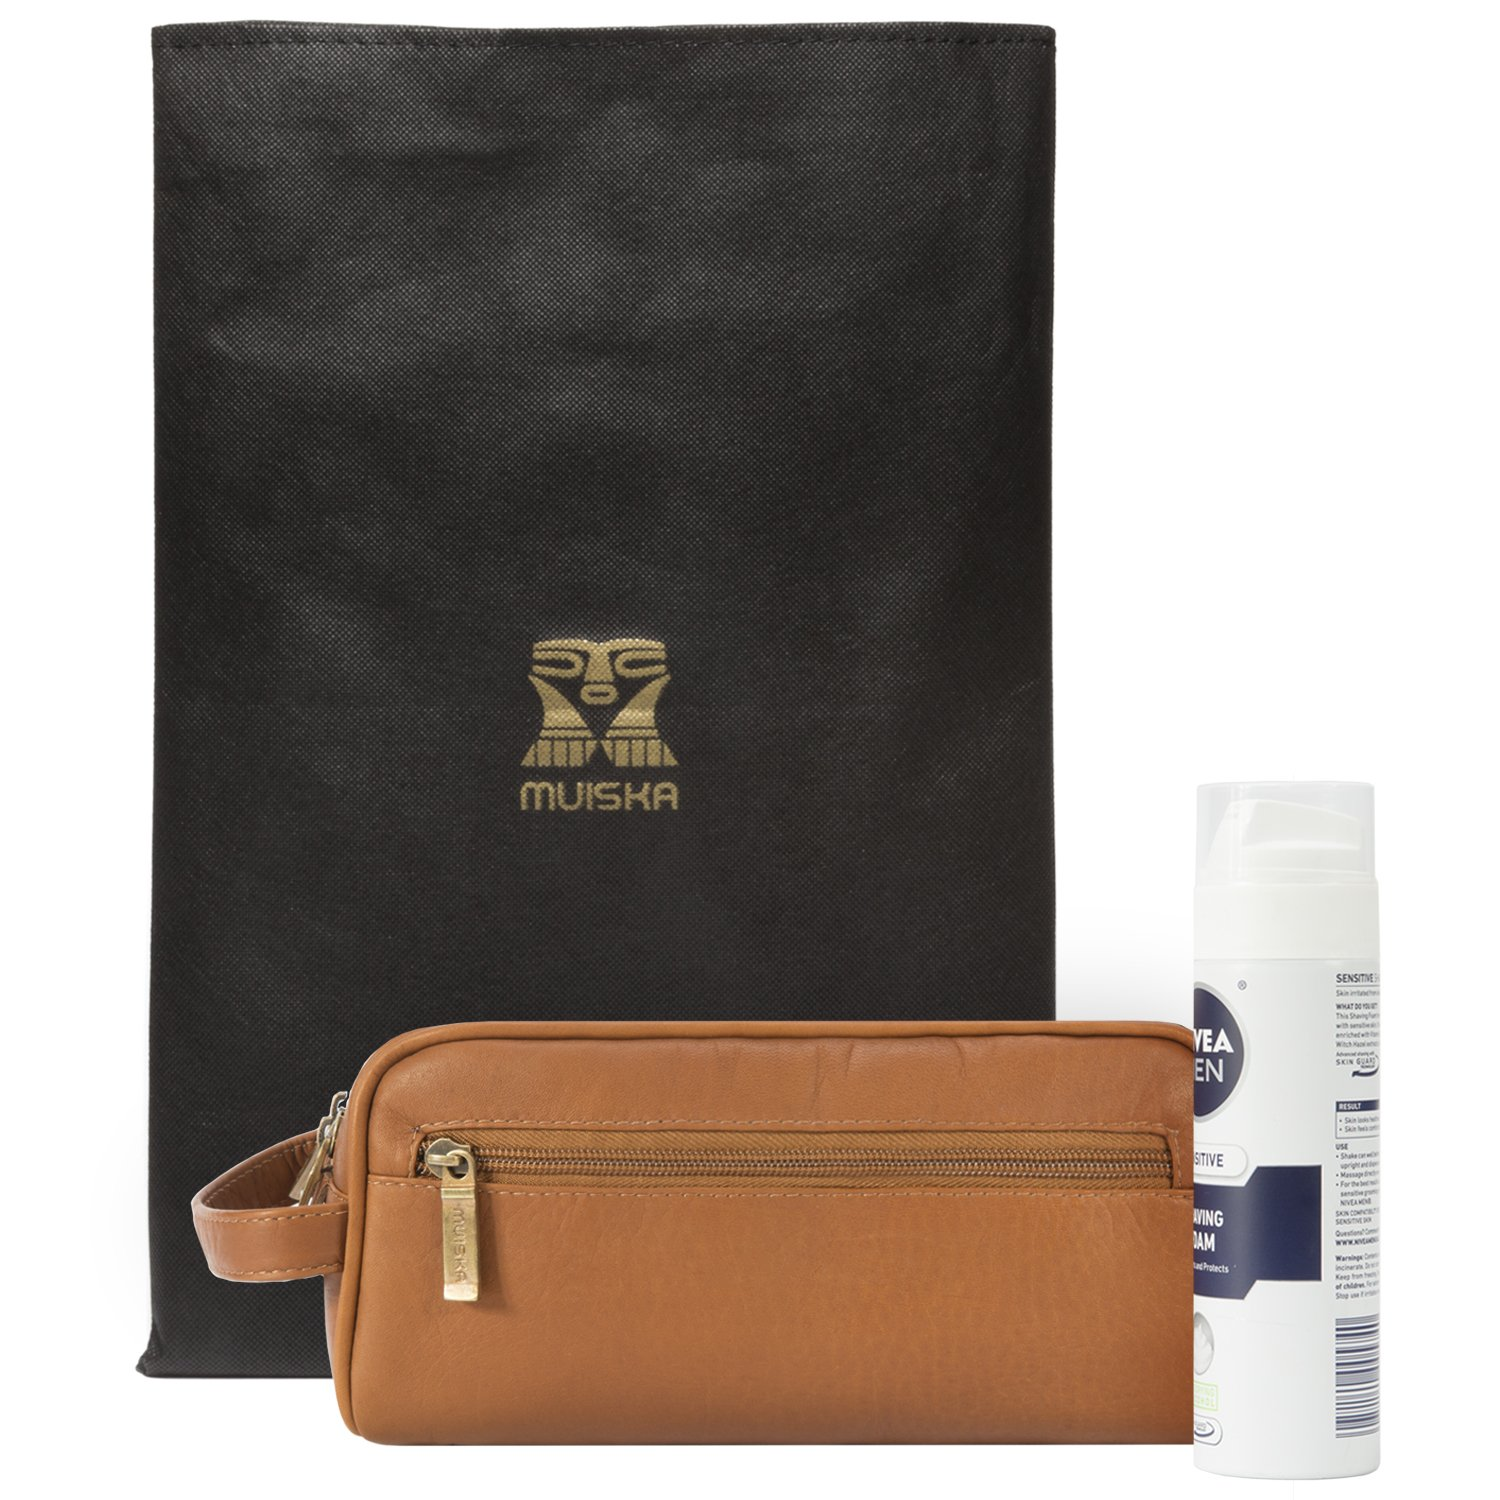 Mens Toiletry Bag -Tomas- by Muiska | Leather Double Zip Travel Dopp Kit Sleek Design and Exceptional Quality in Saddle